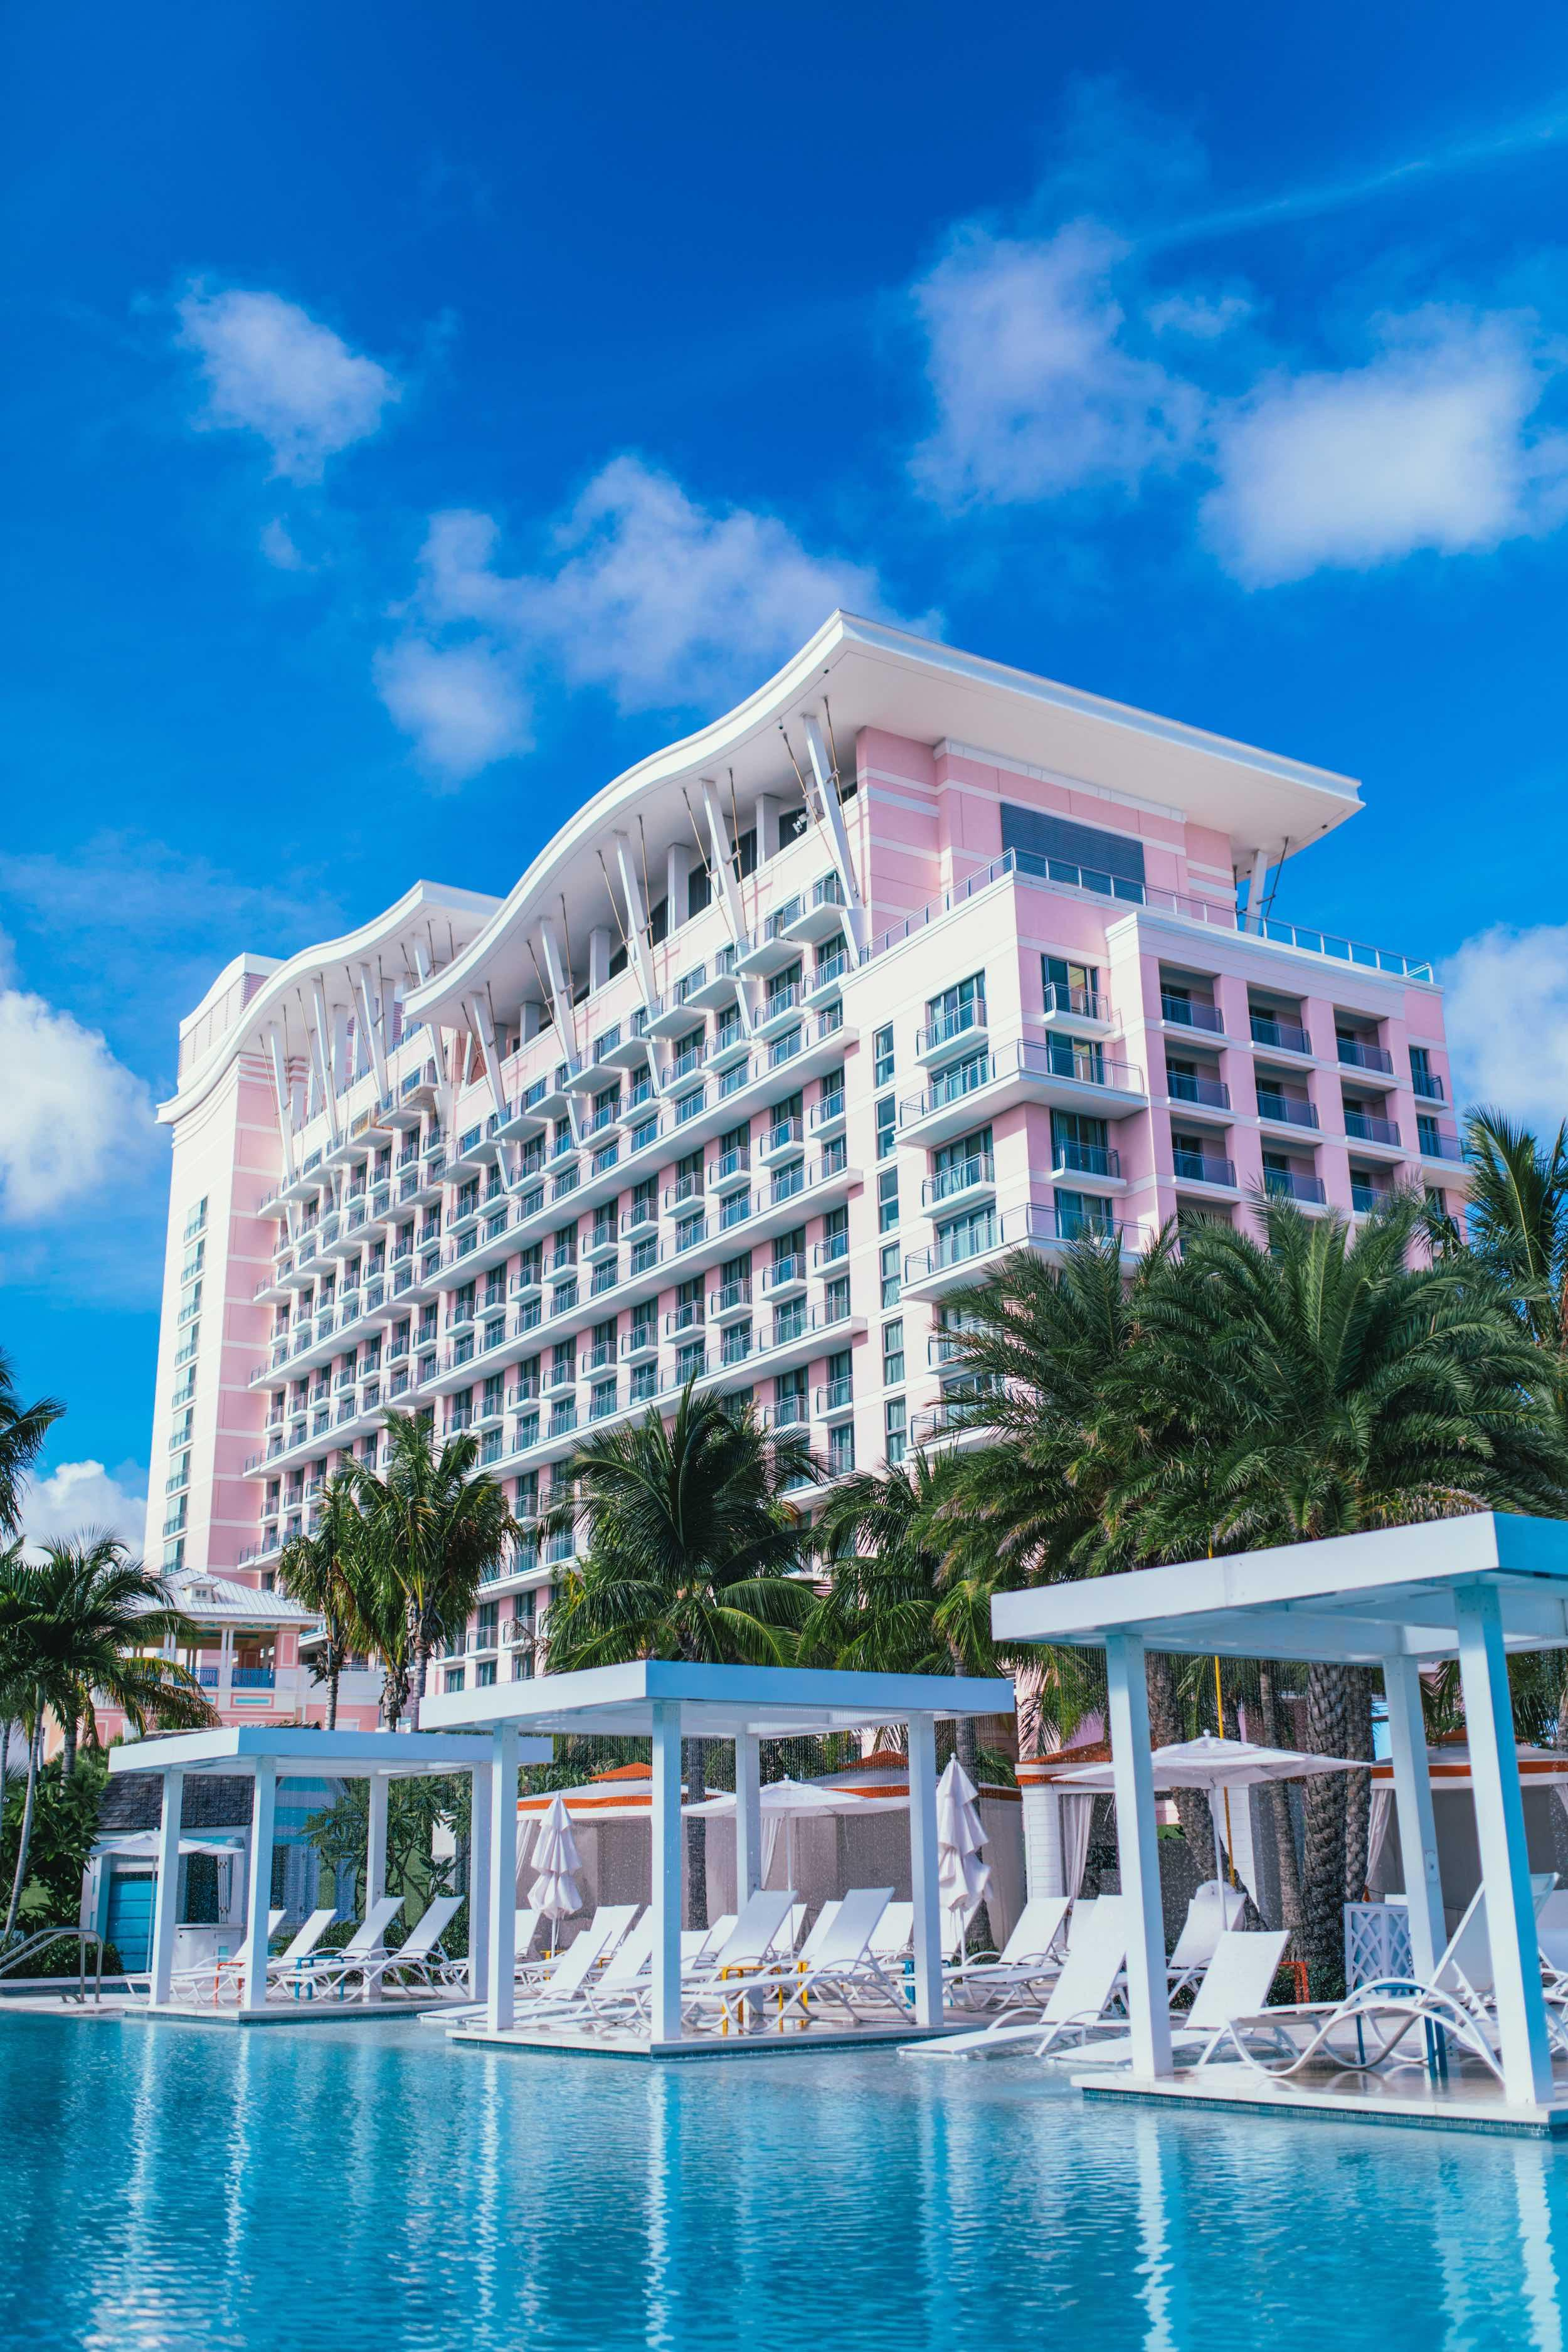 SLS Baha Mar exterior and pool